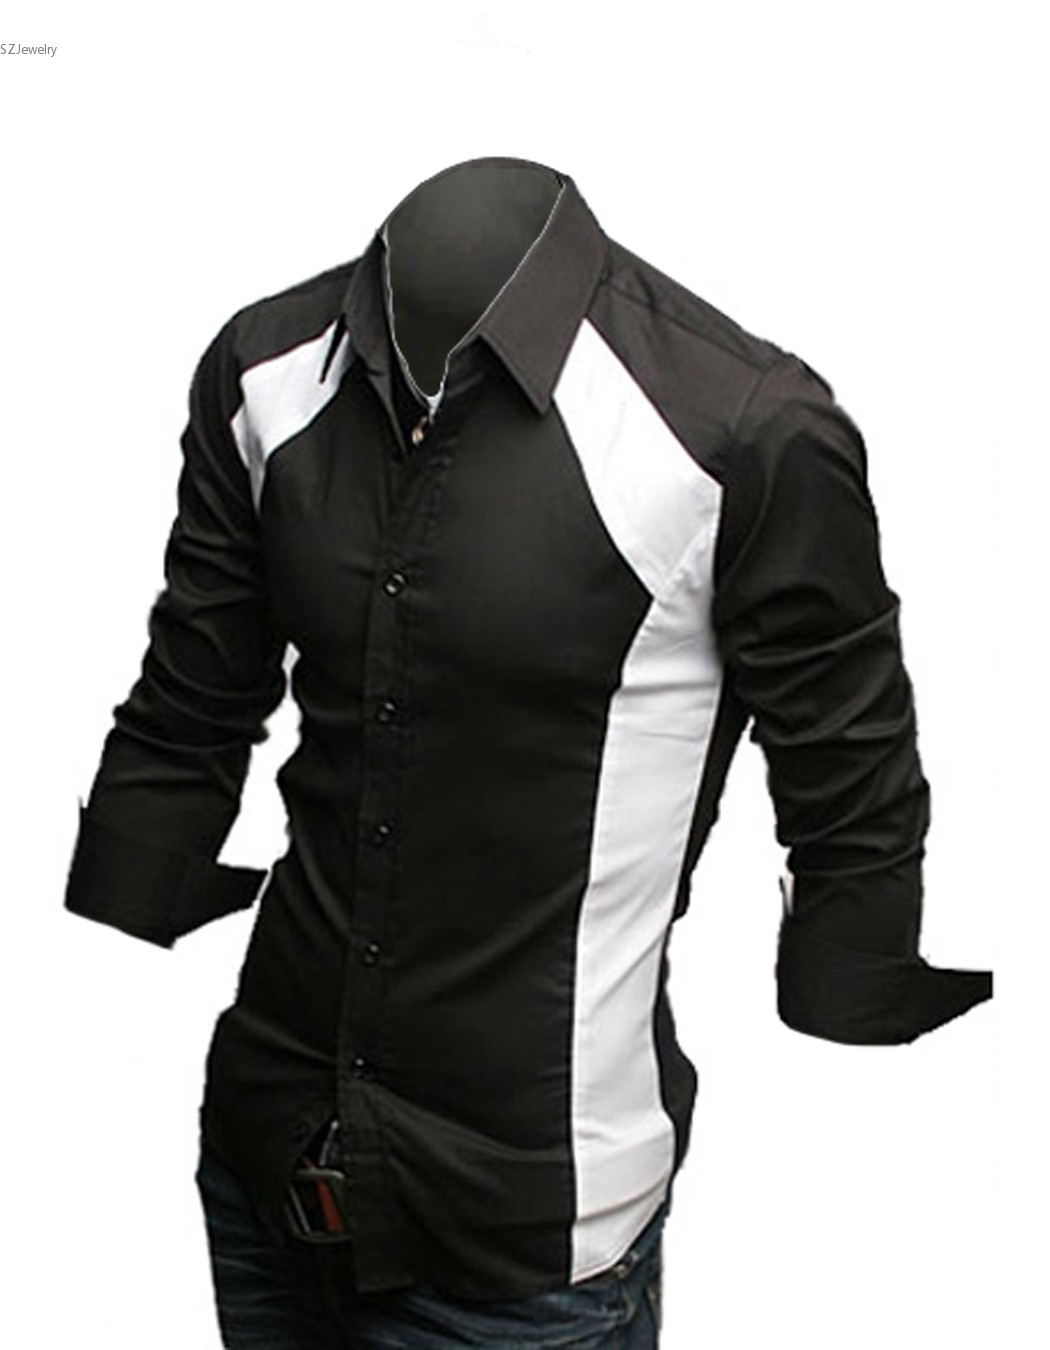 Compare Prices on White Suit Black Shirt- Online Shopping/Buy Low ...